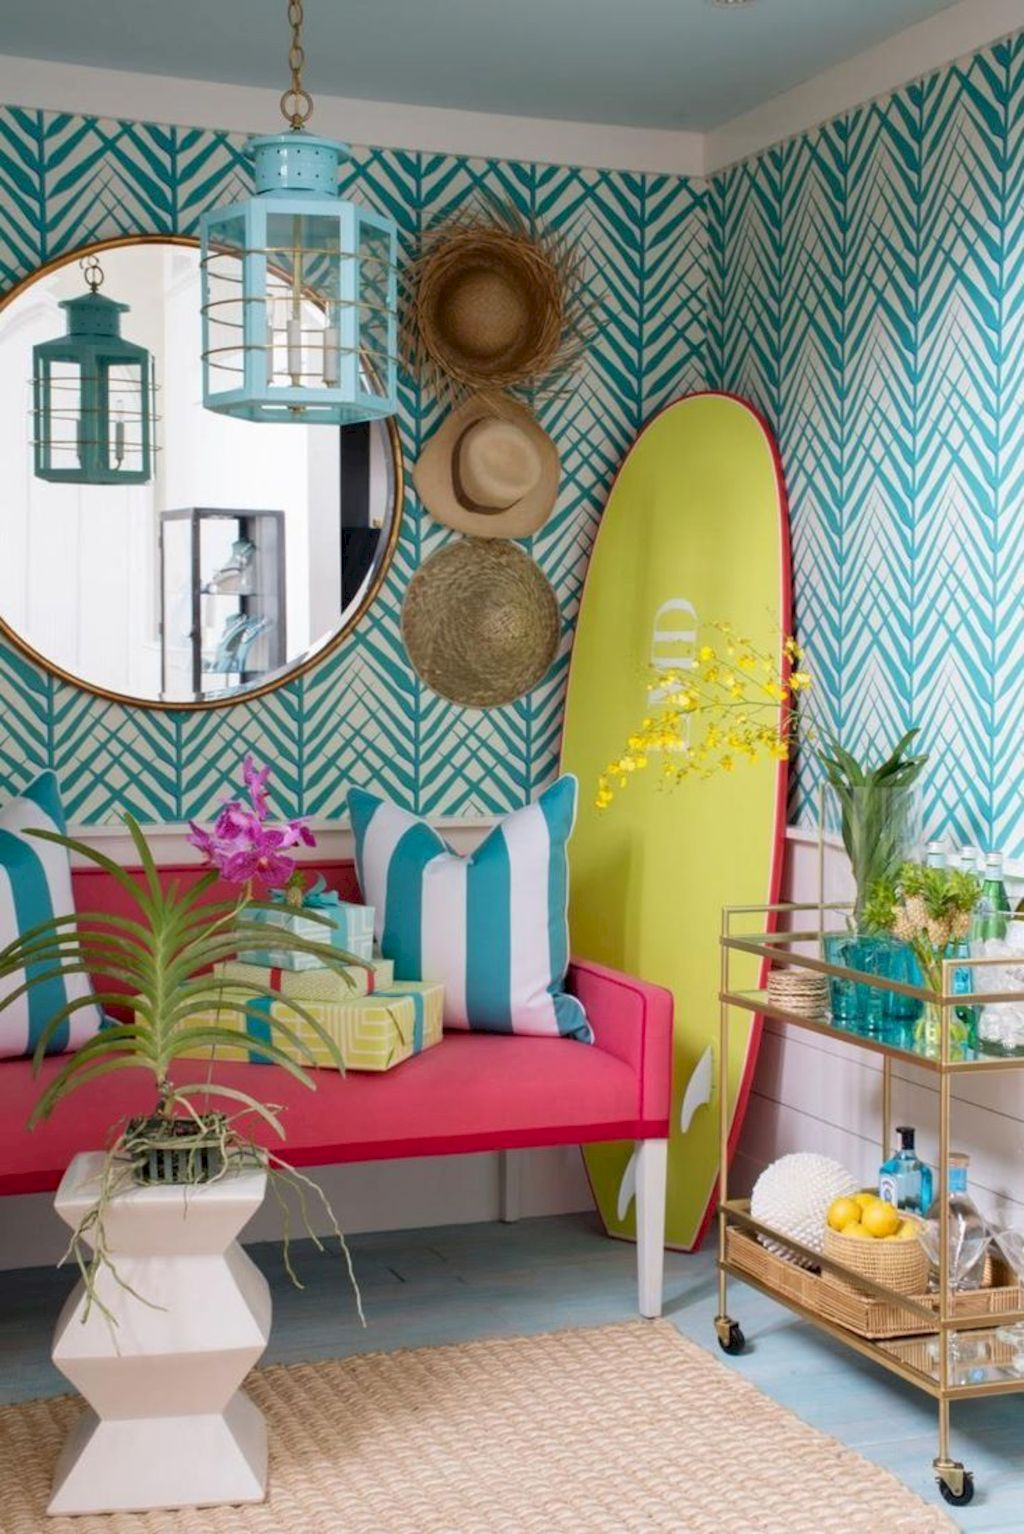 Coastal chic decoration with nautical accessories showing a fresh look in cool beach house styles Image 8